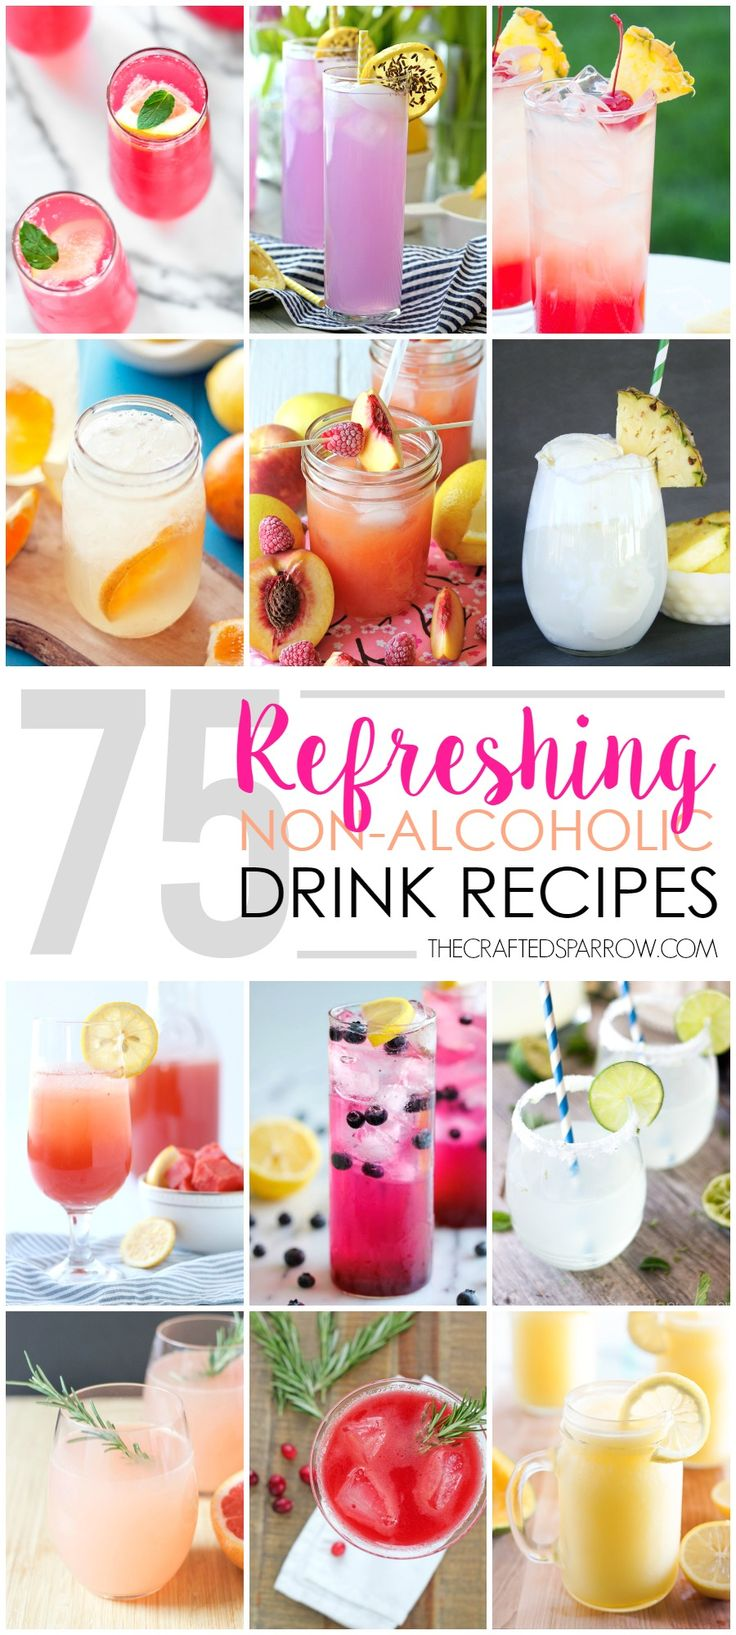 Summer | 75 Refreshing Non-Alcoholic Drink Recipes